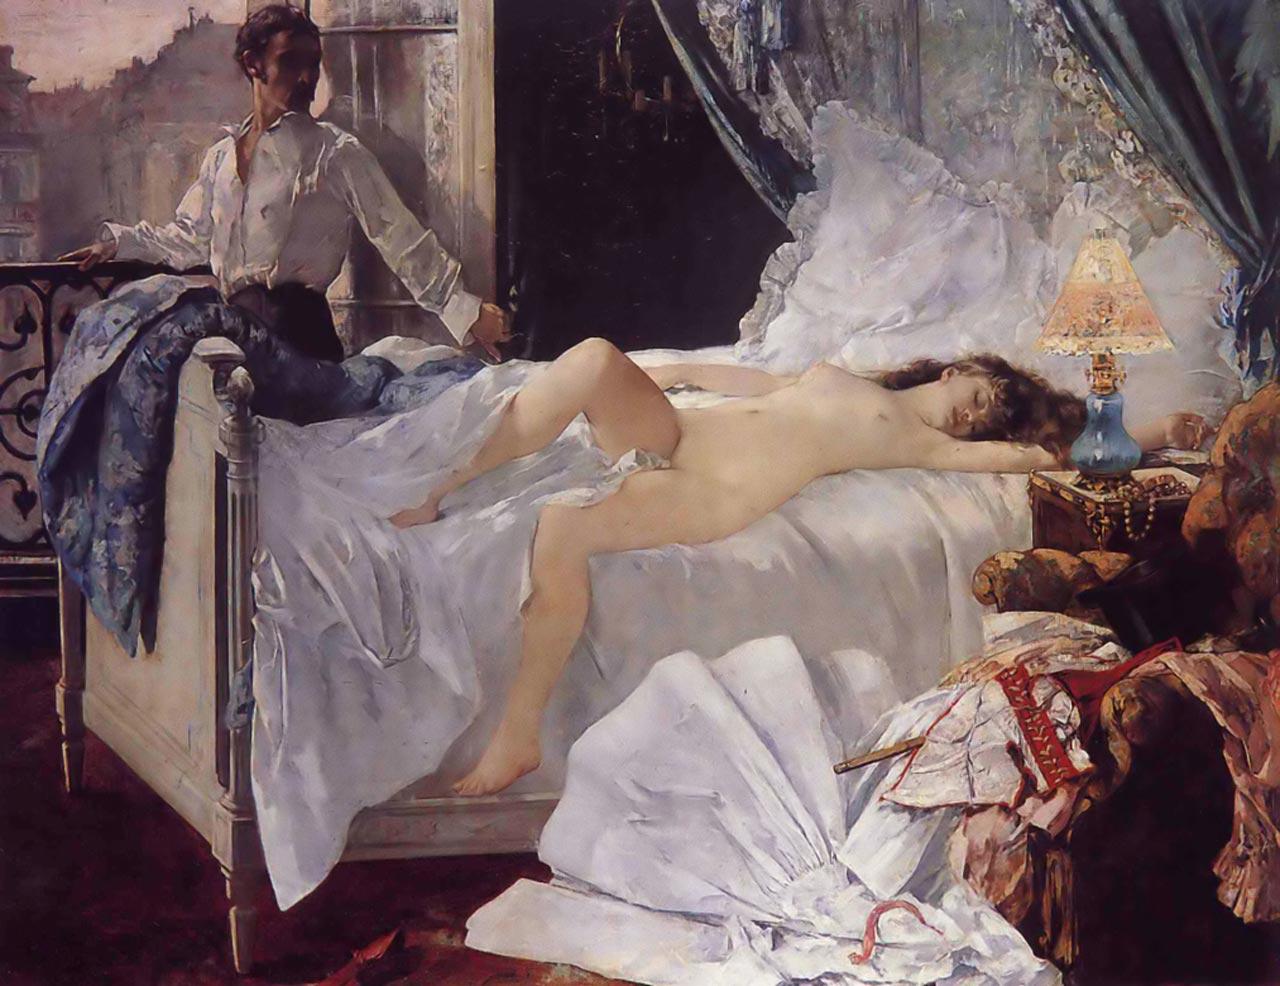 Henri Gervex, Rolla,1878. A painting of a nude girl (Ellen-Andrée) reclining after sex.